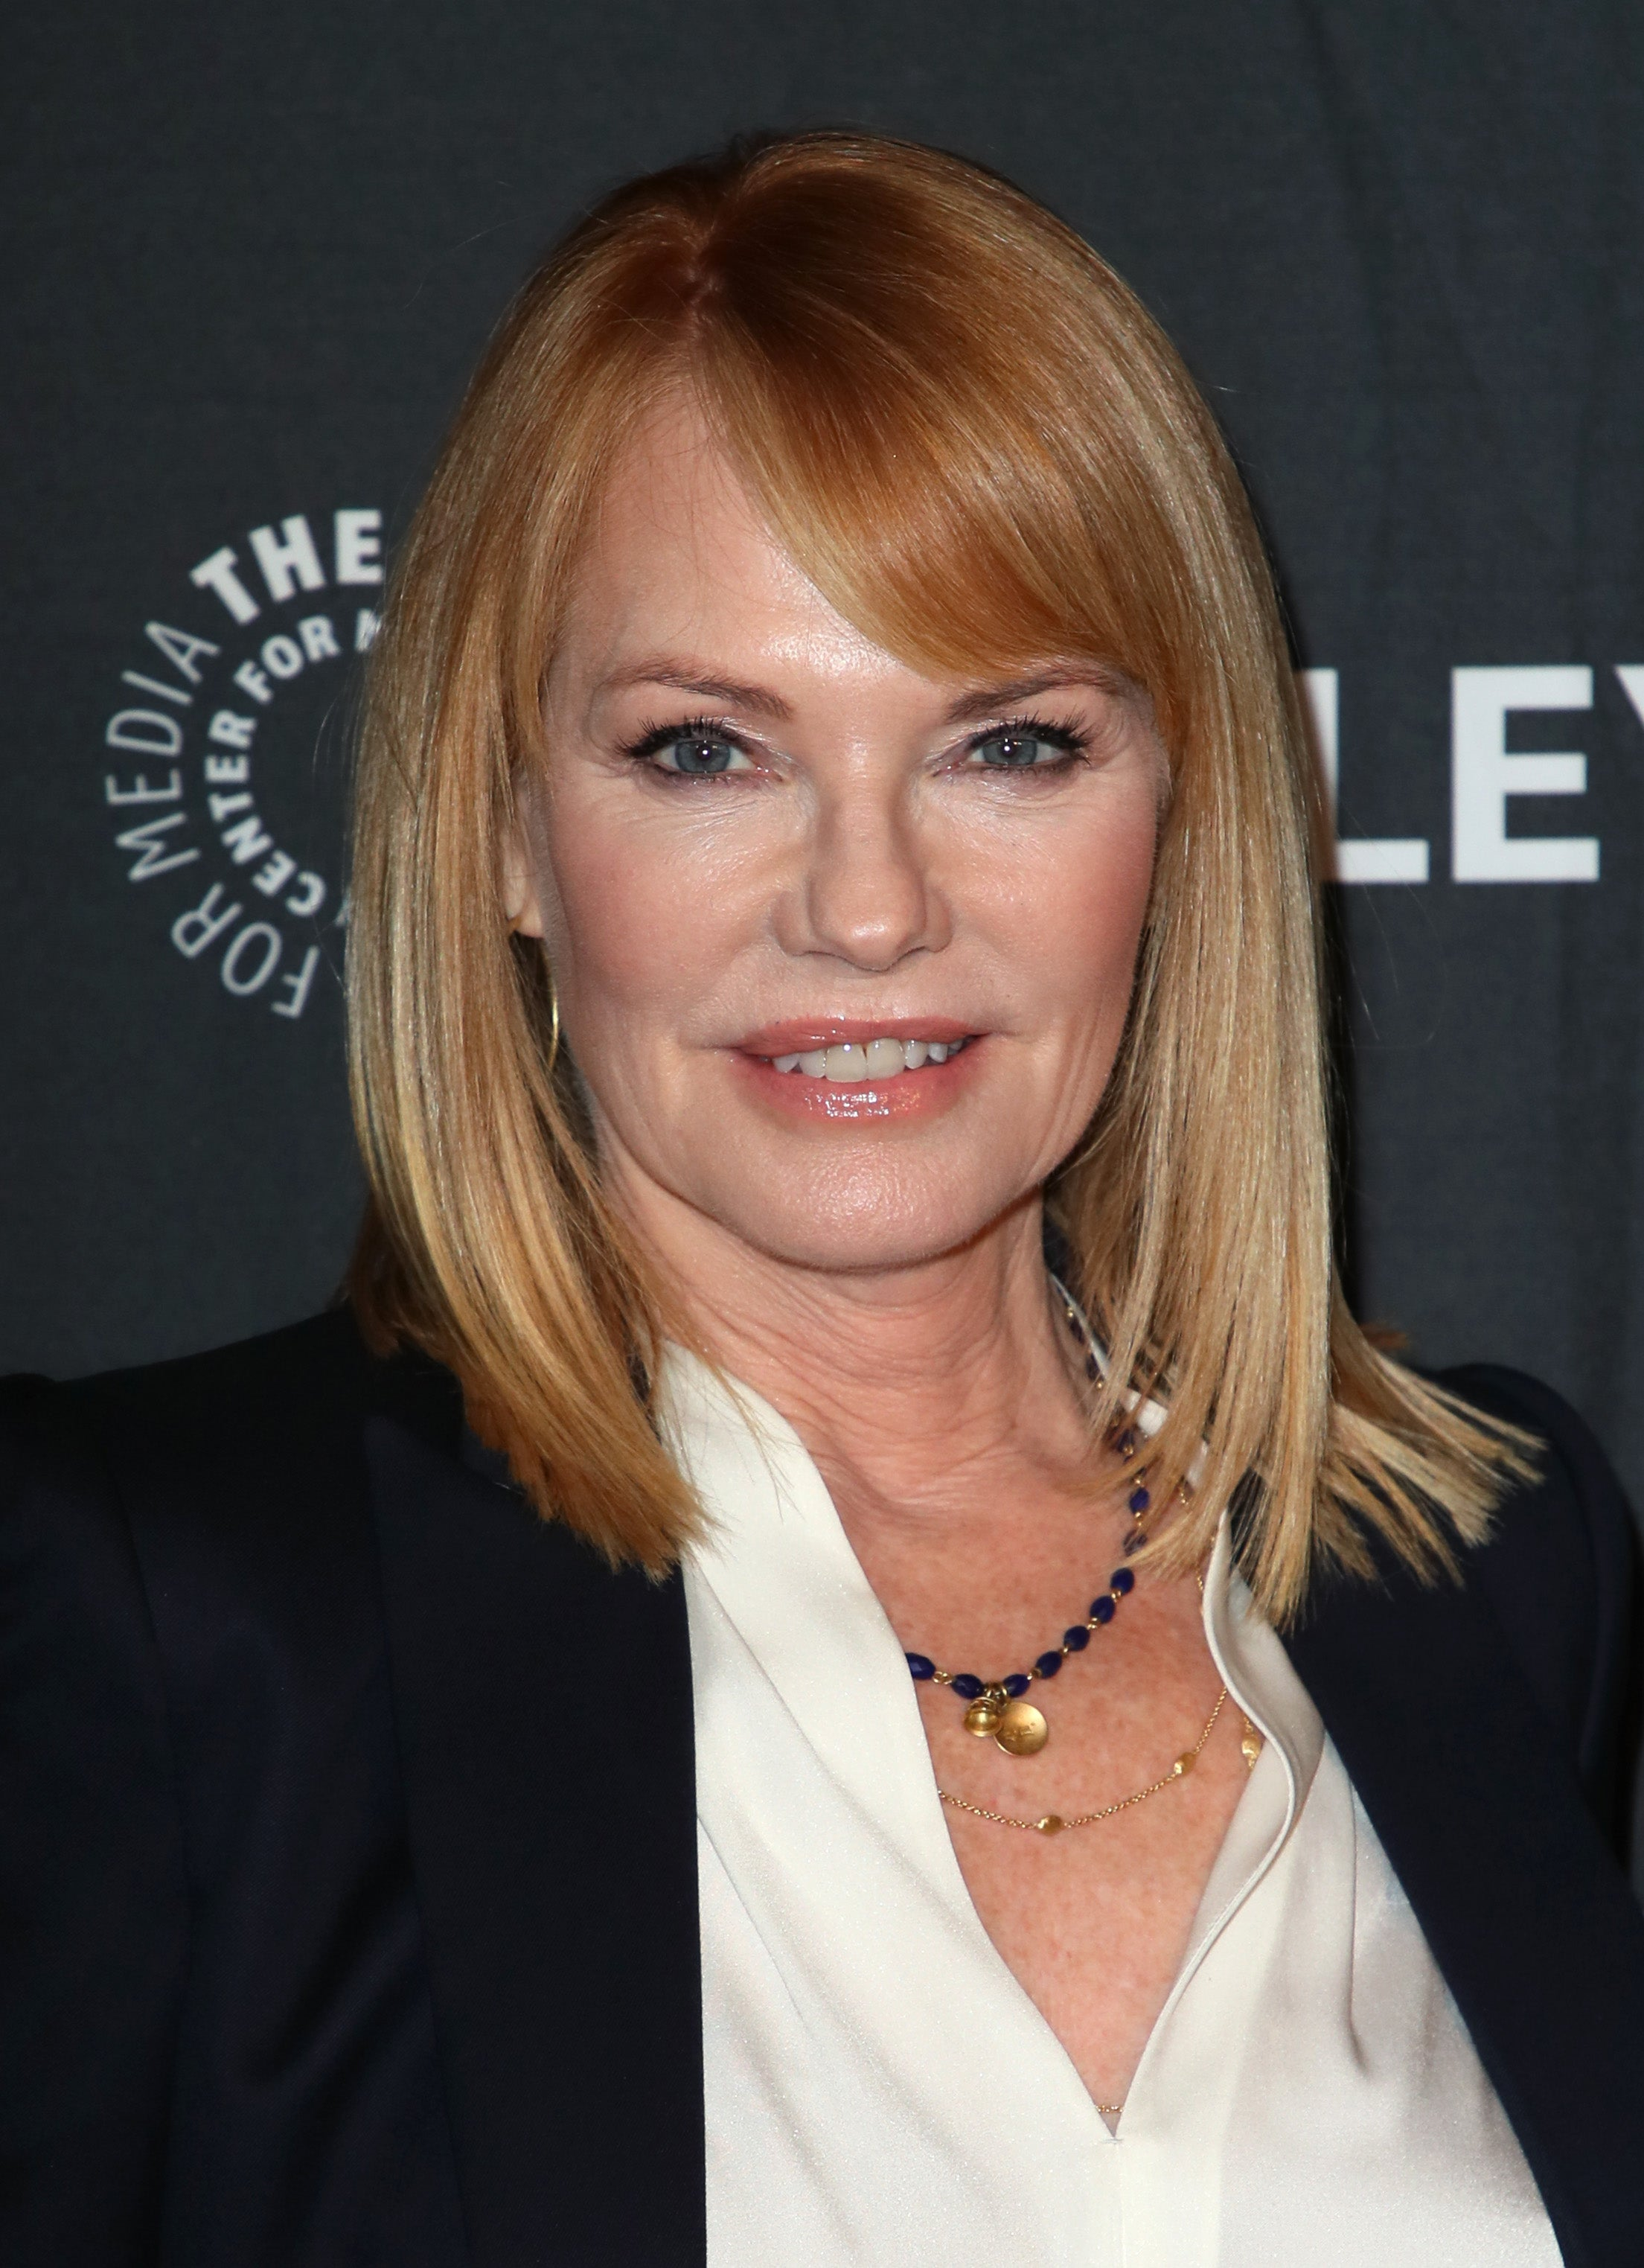 Actress Marg Helgenberger, Golden Globe nominee